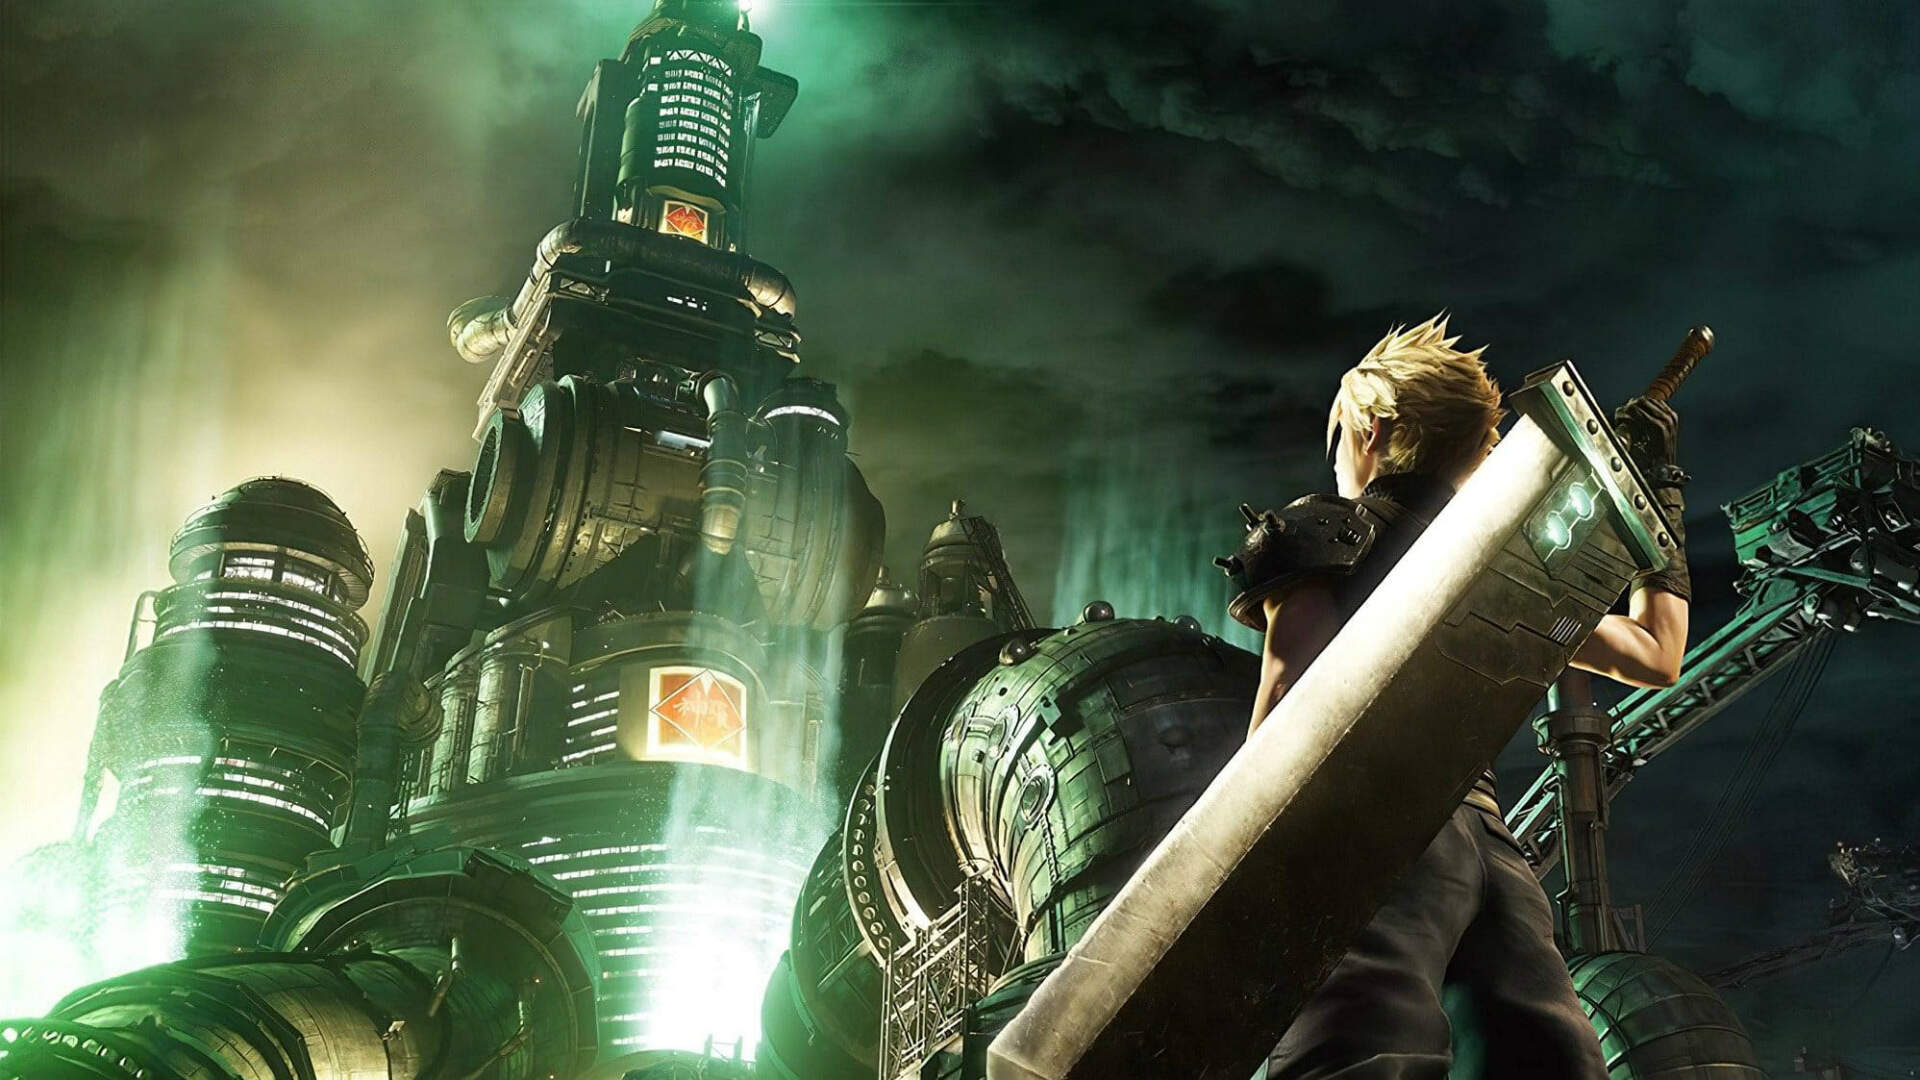 Final Fantasy 7 Remake's Opening Movie Is Here, and It Looks Stunning